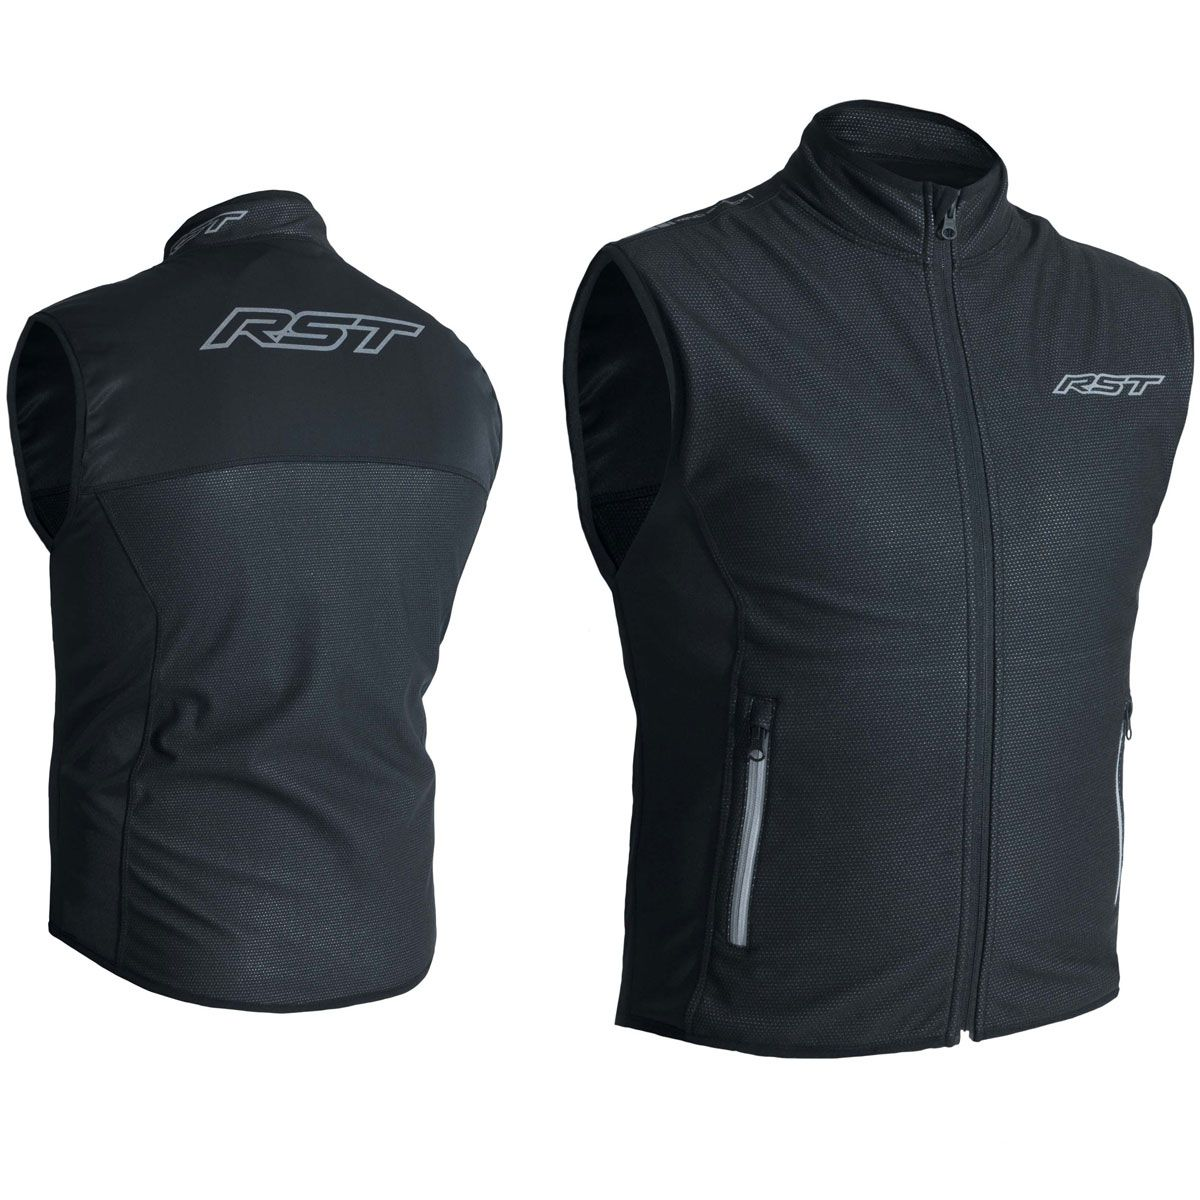 RST Thermal Wind Block Gilet Black